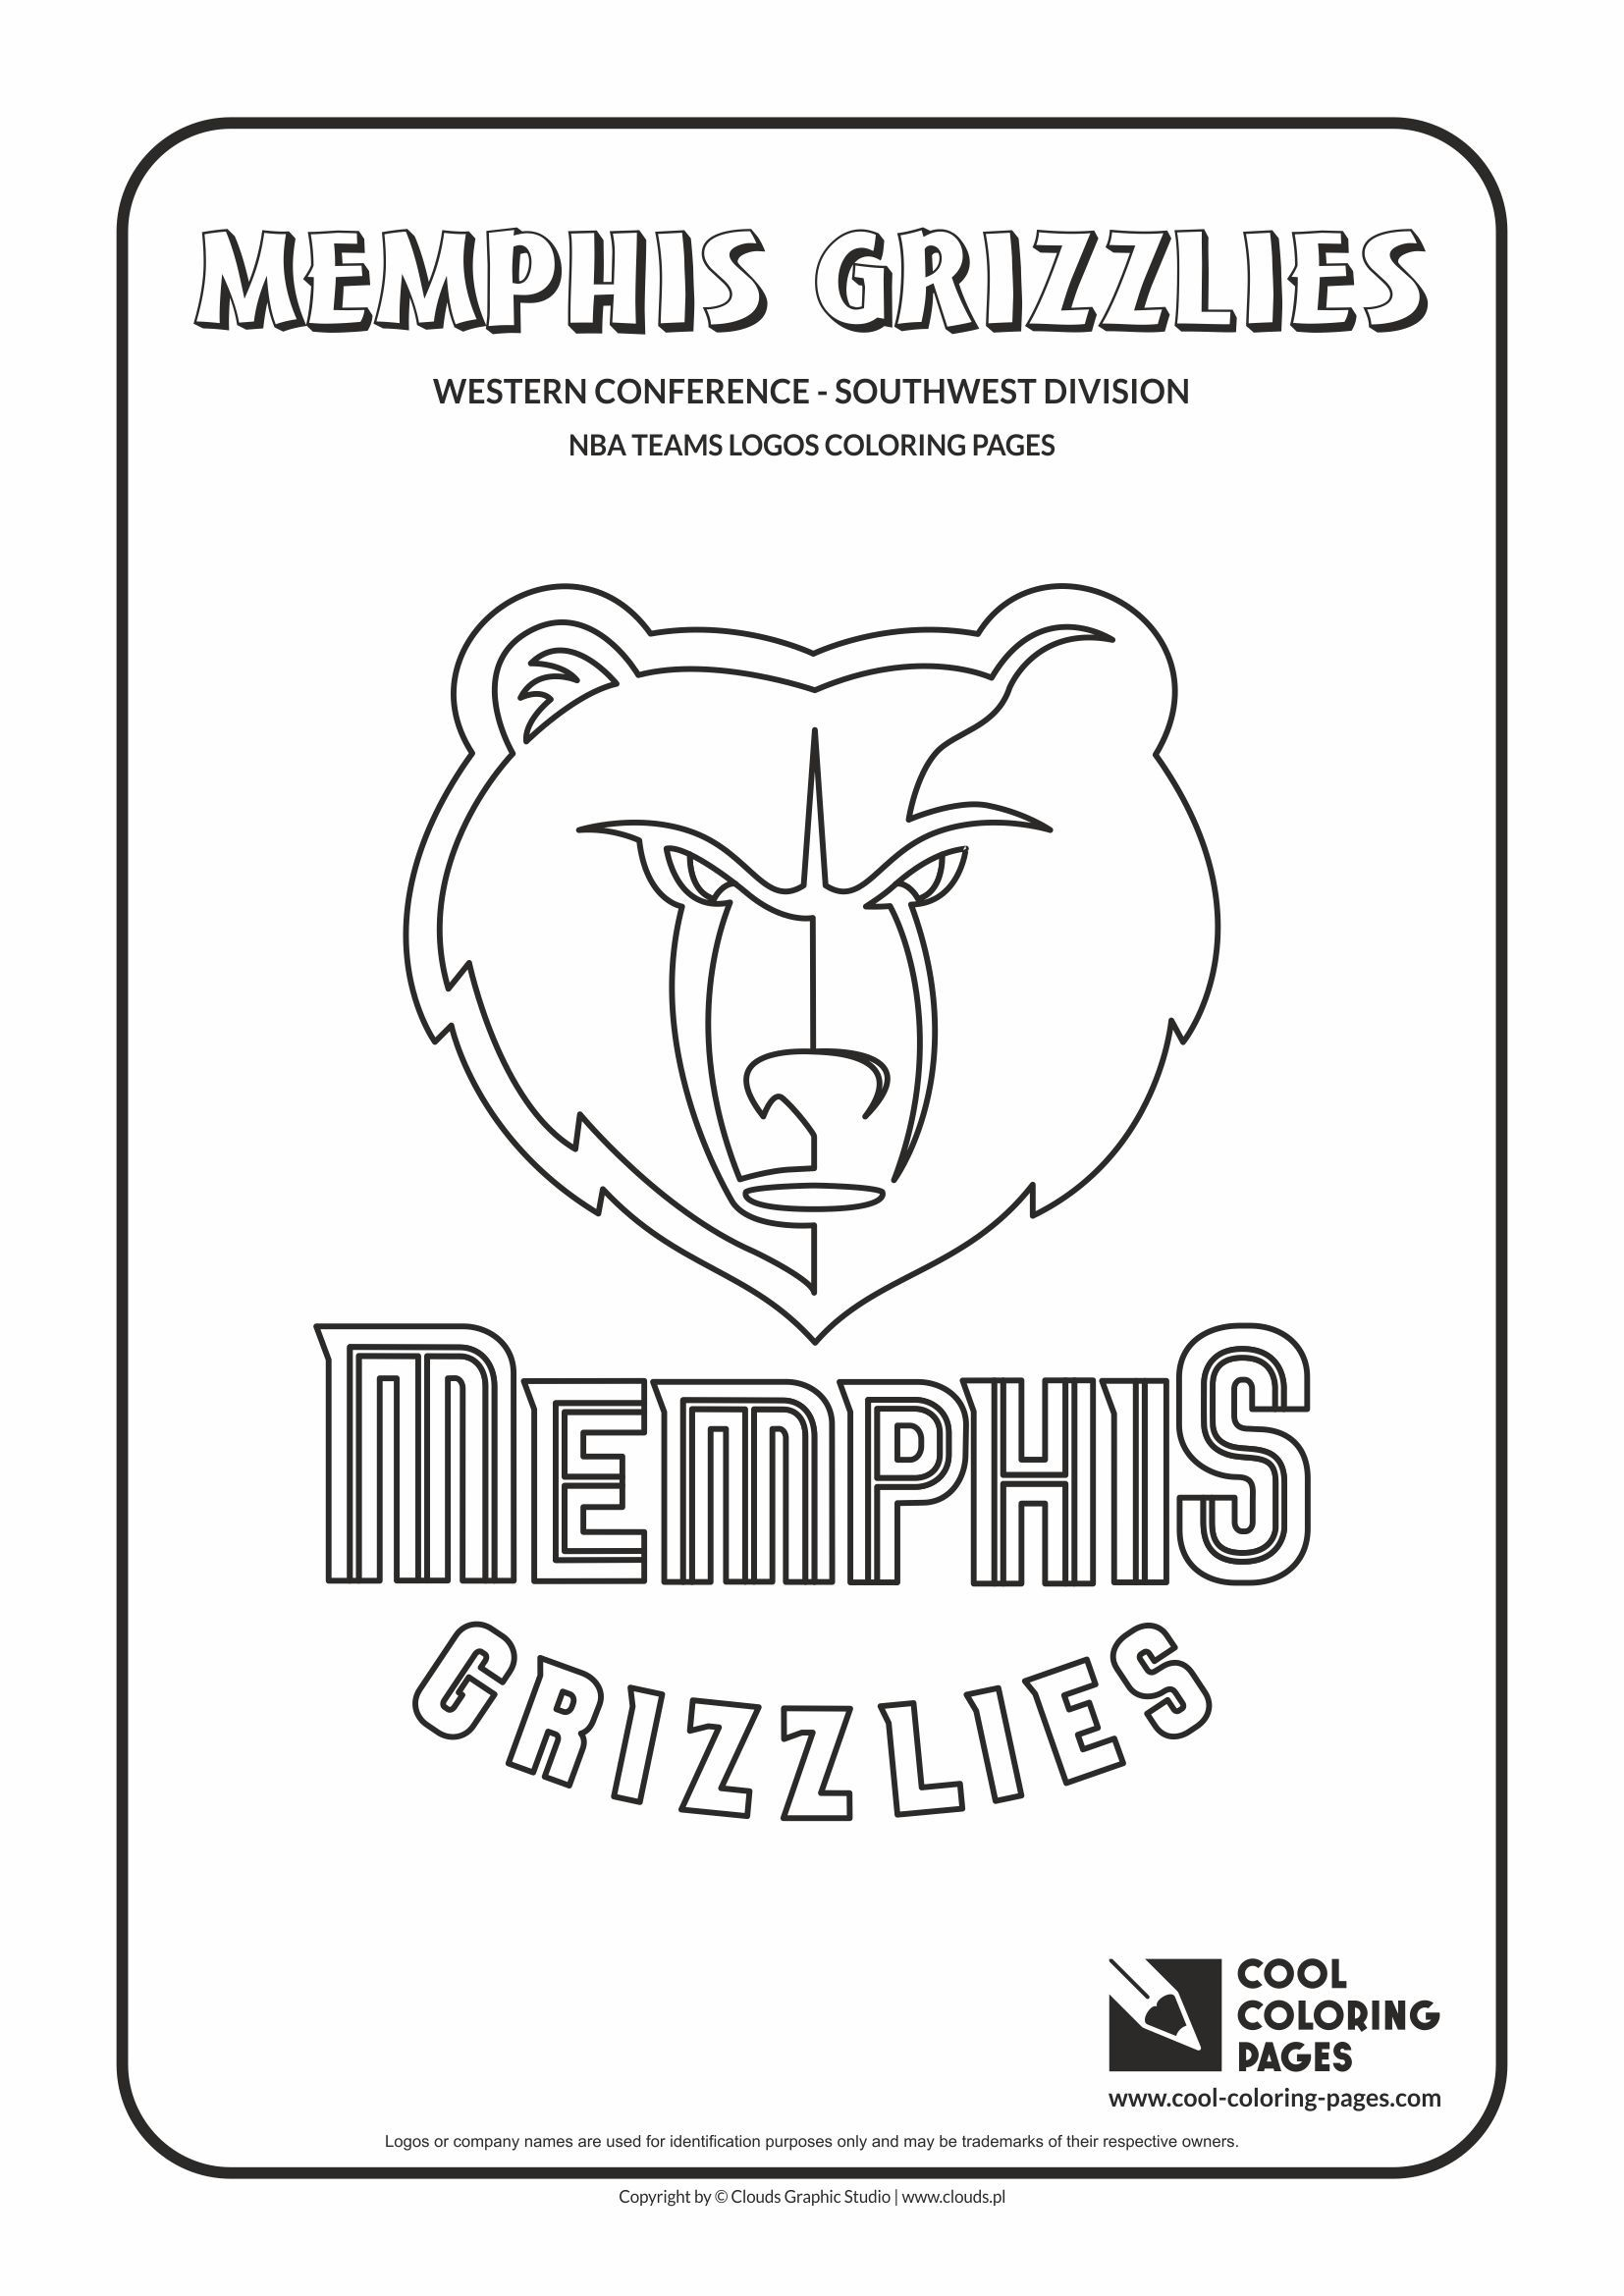 Memphis Grizzlies Nba Basketball Teams Logos Coloring Pages